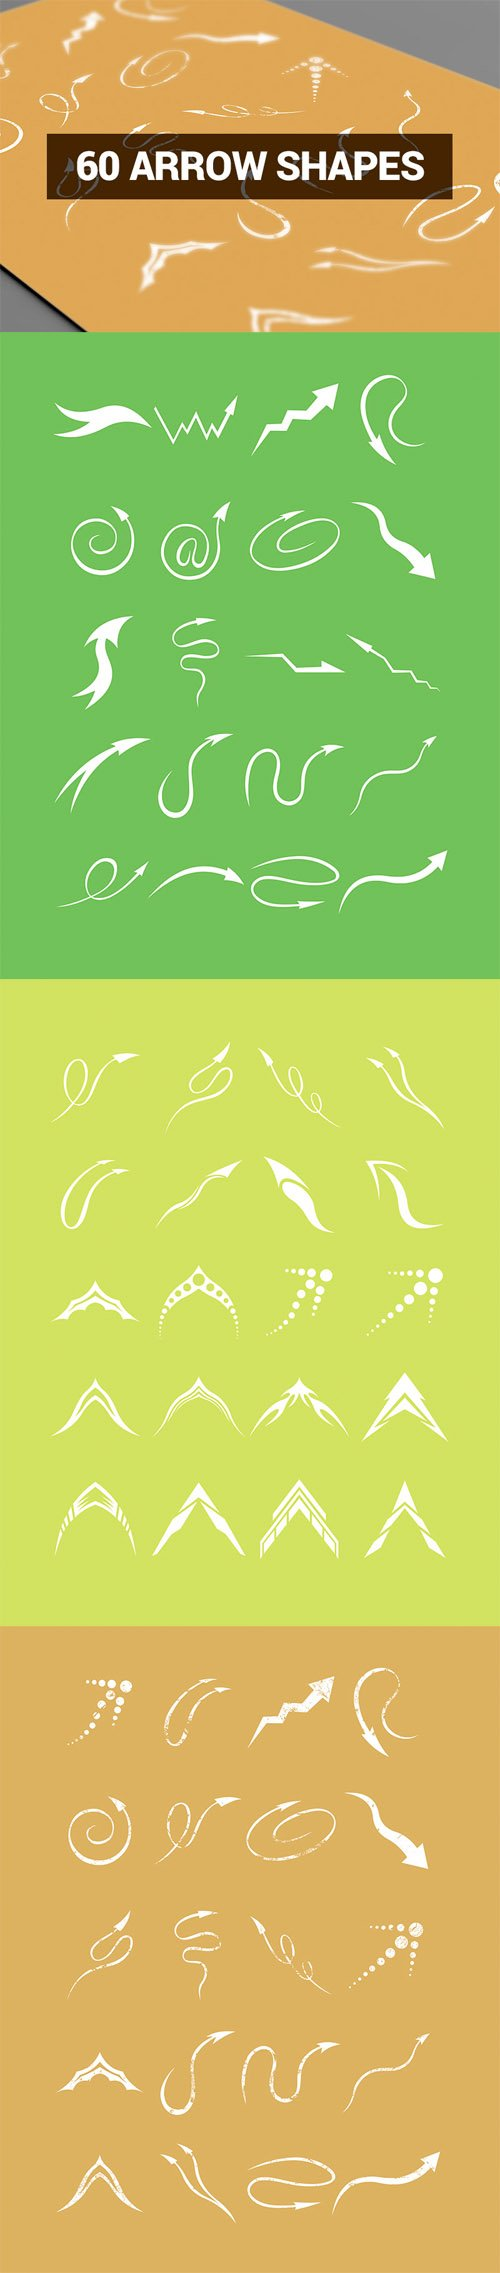 Vector Set Abstract Shapes - 60 Arrow Shapes Set 2